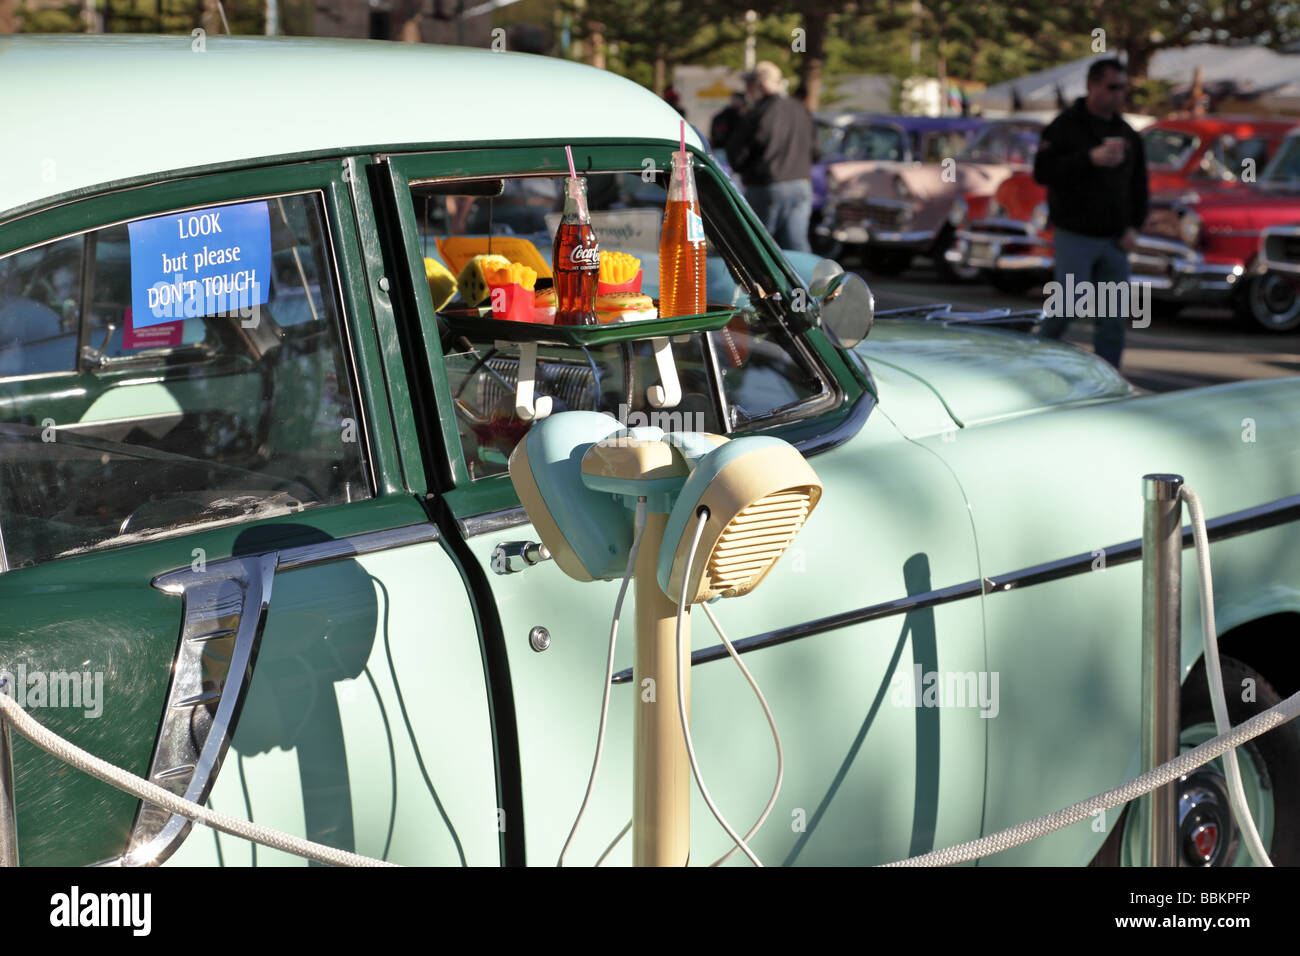 Vintage car with fifties drive in speakers and tray of food